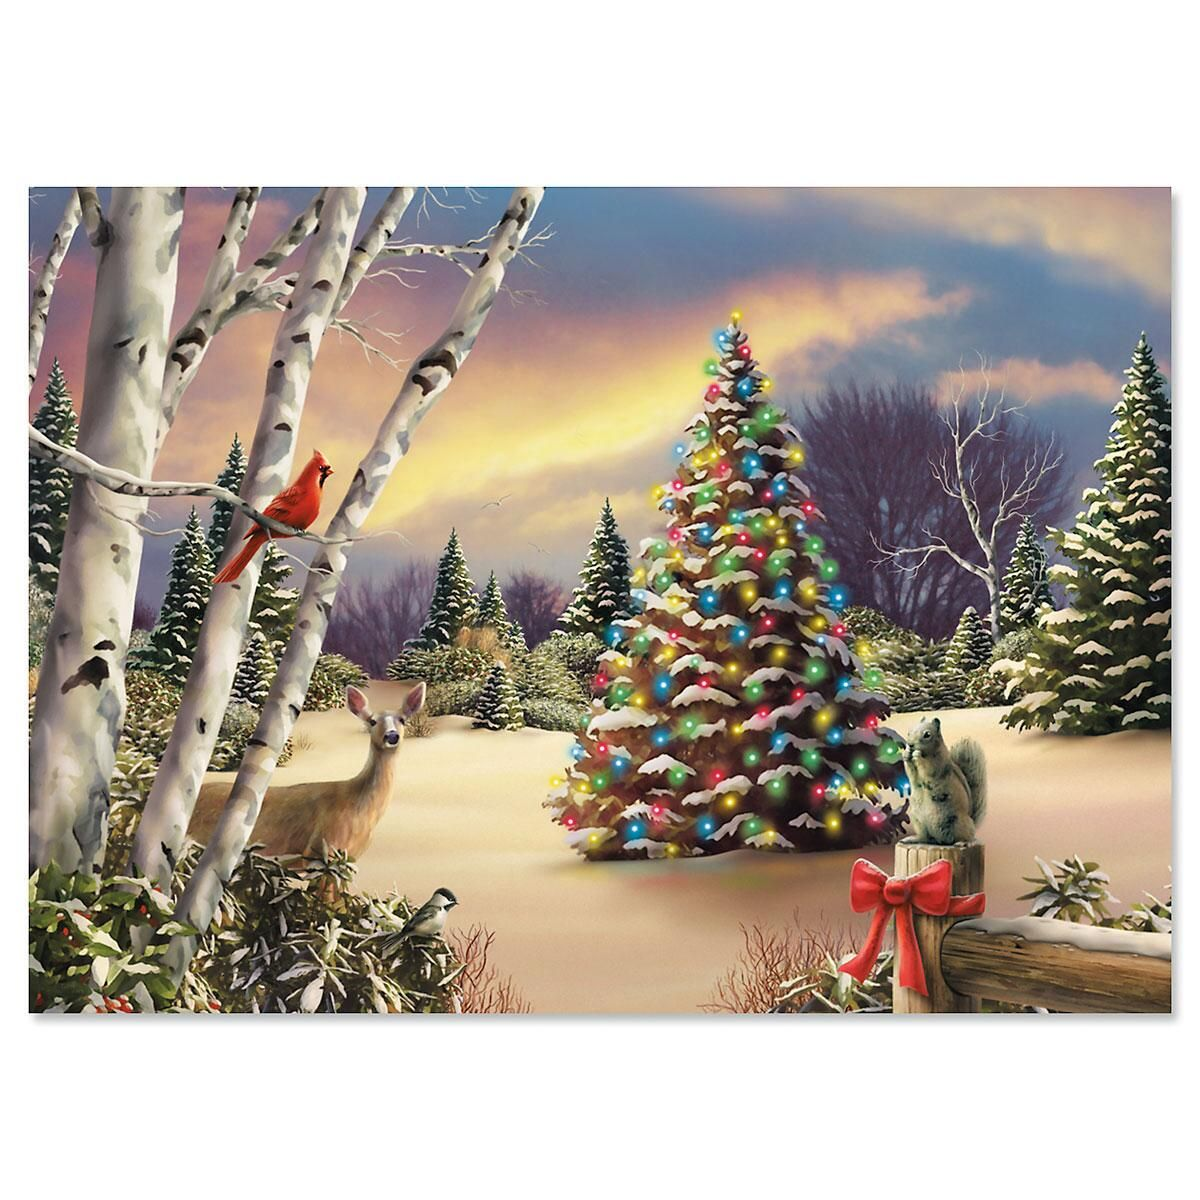 Innocent Light Nonpersonalized Christmas Cards - Set of 18